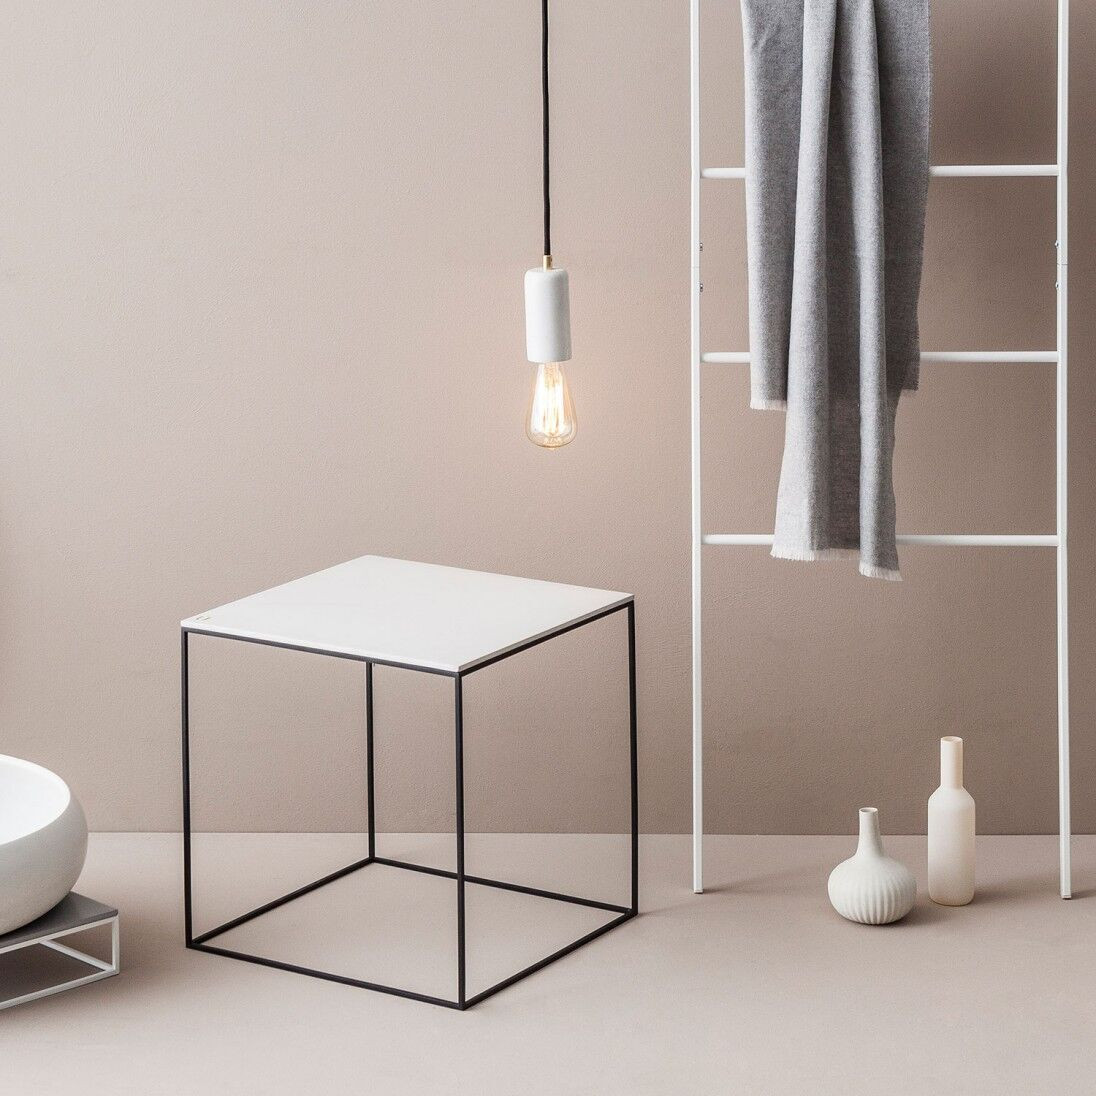 MoonSquare Side Table | Black Steel Frame / White Table Top